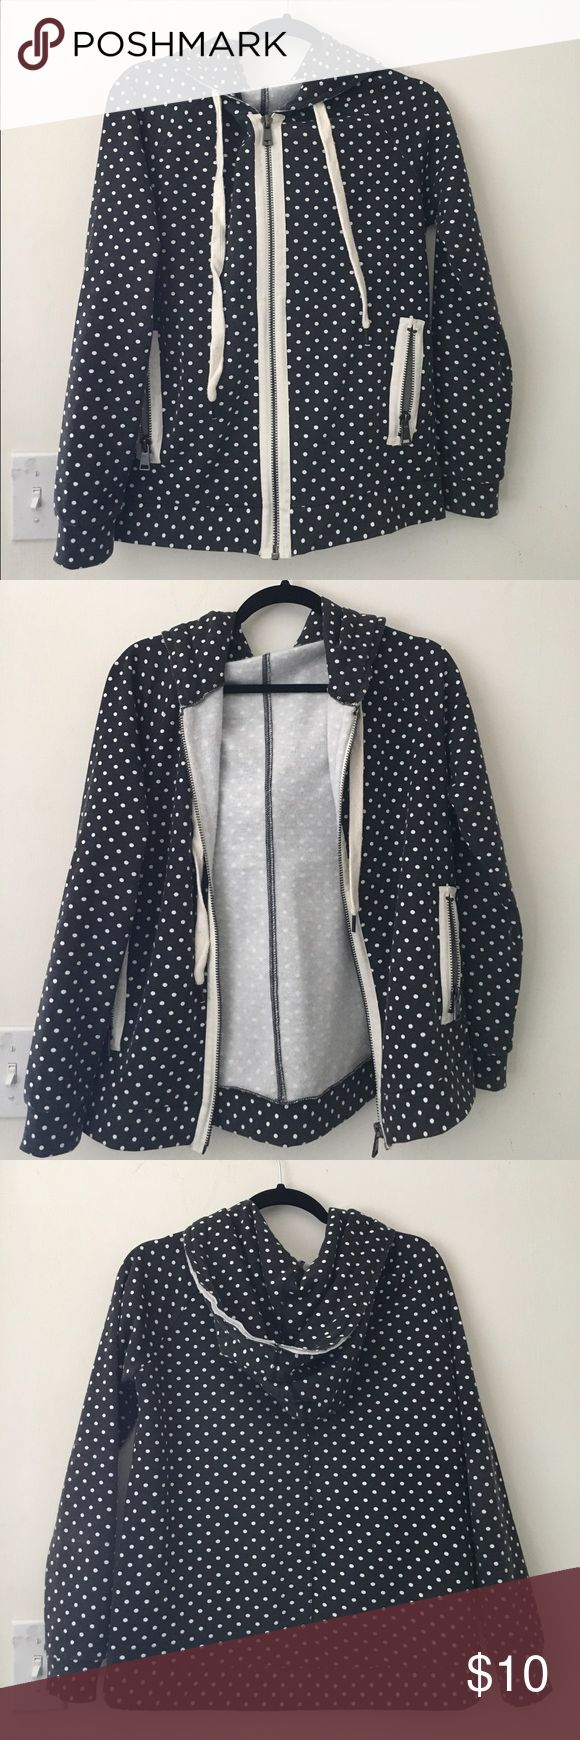 Black and White Polka Dot Zip-up Hoodie Thick polka dotted jacket, great for fall and winter. Has a hood and super long draw strings. Pockets zip up. Lined with fleece. Worn gently, still excellent condition. The white colour is faded as design, not wear. Jackets & Coats